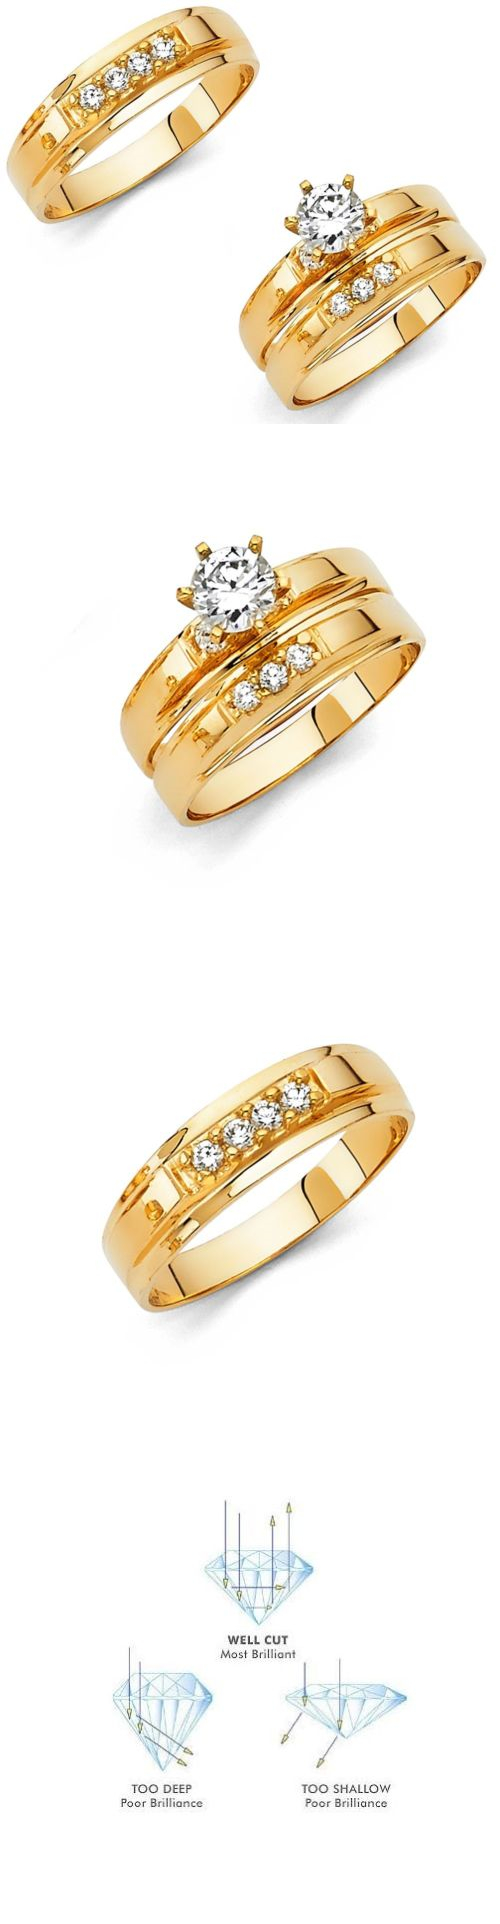 Cz Moissanite And Simulated 92878 14k Solid Yellow Italian Gold Wedding Band Bridal Solitaire Engagement